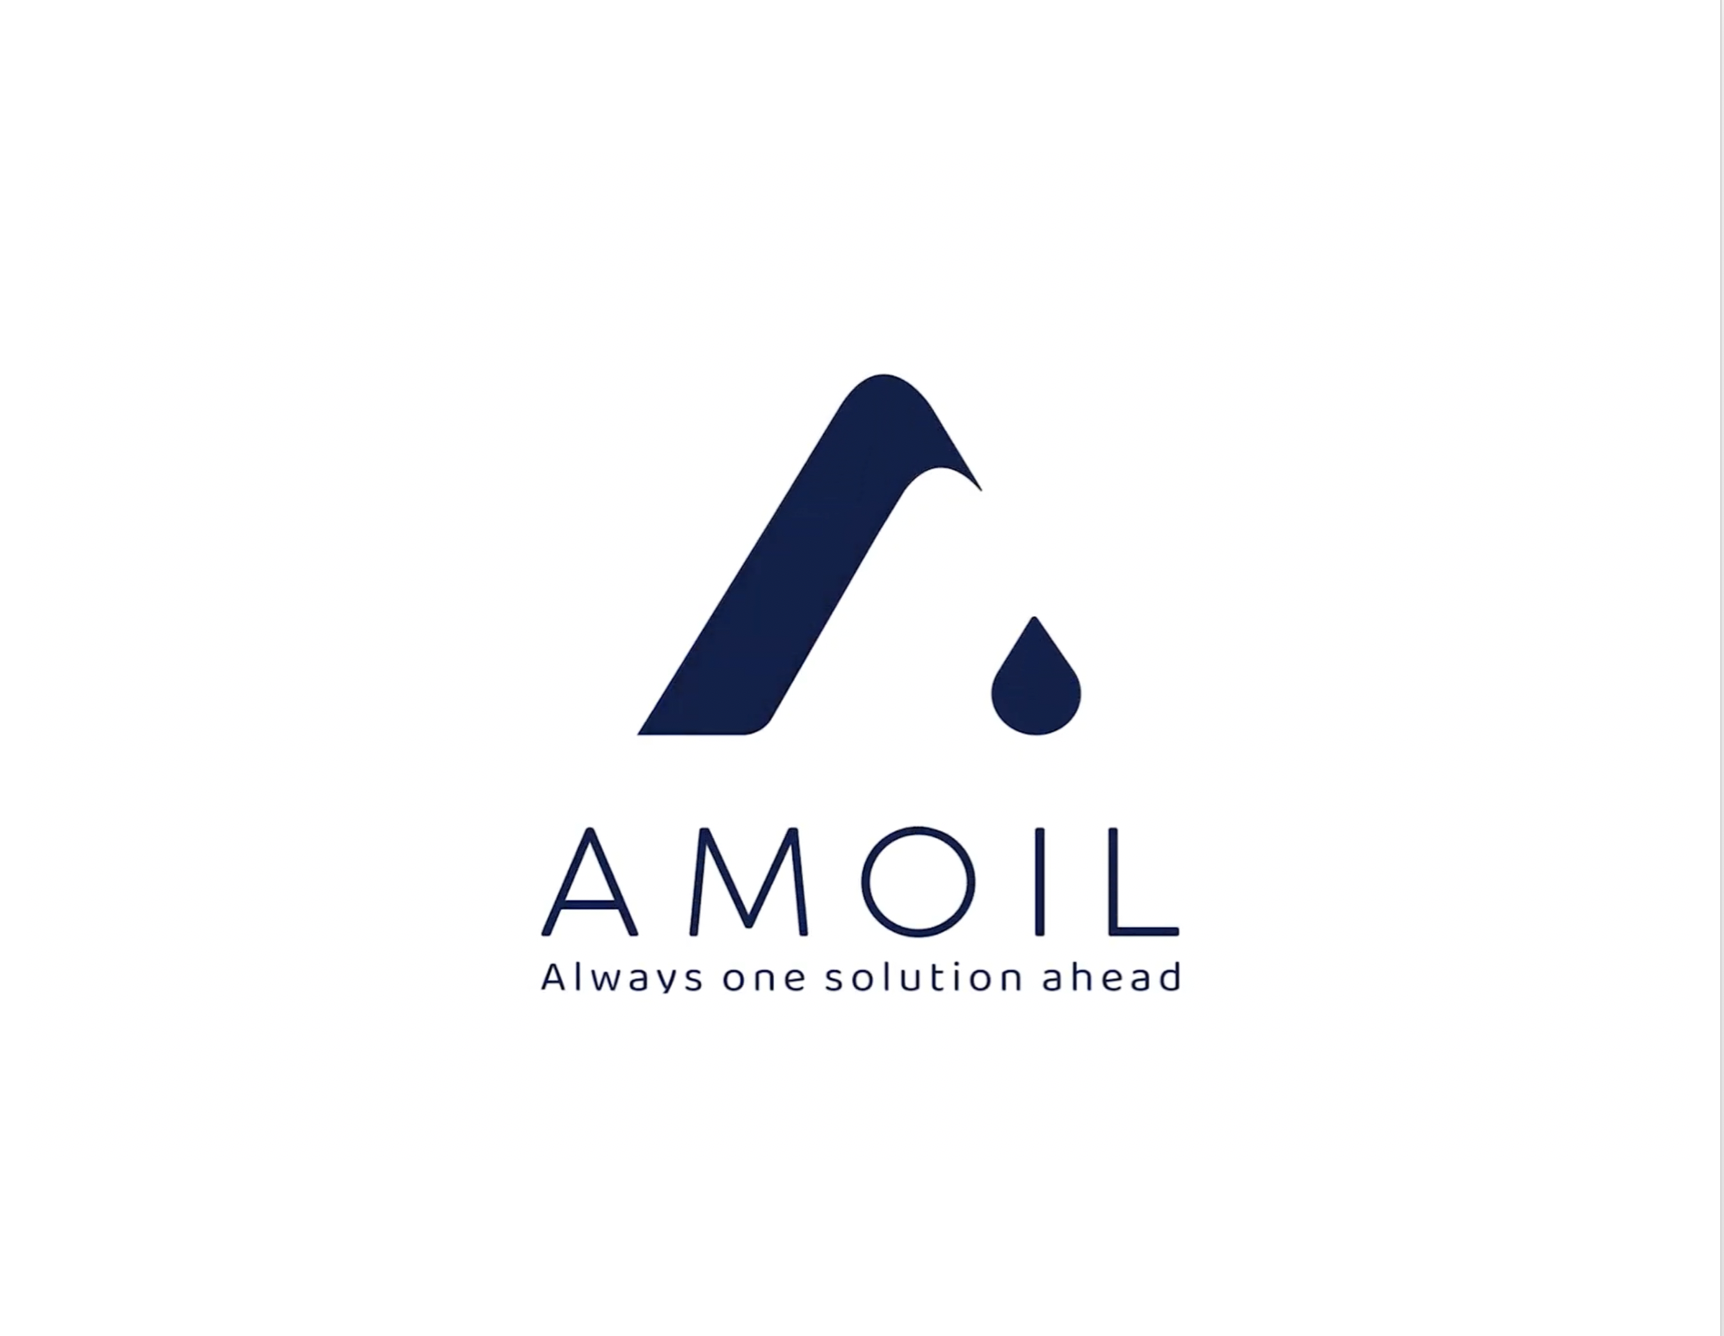 South African bunker trading firm Amoil rebrands after 36 years on the market